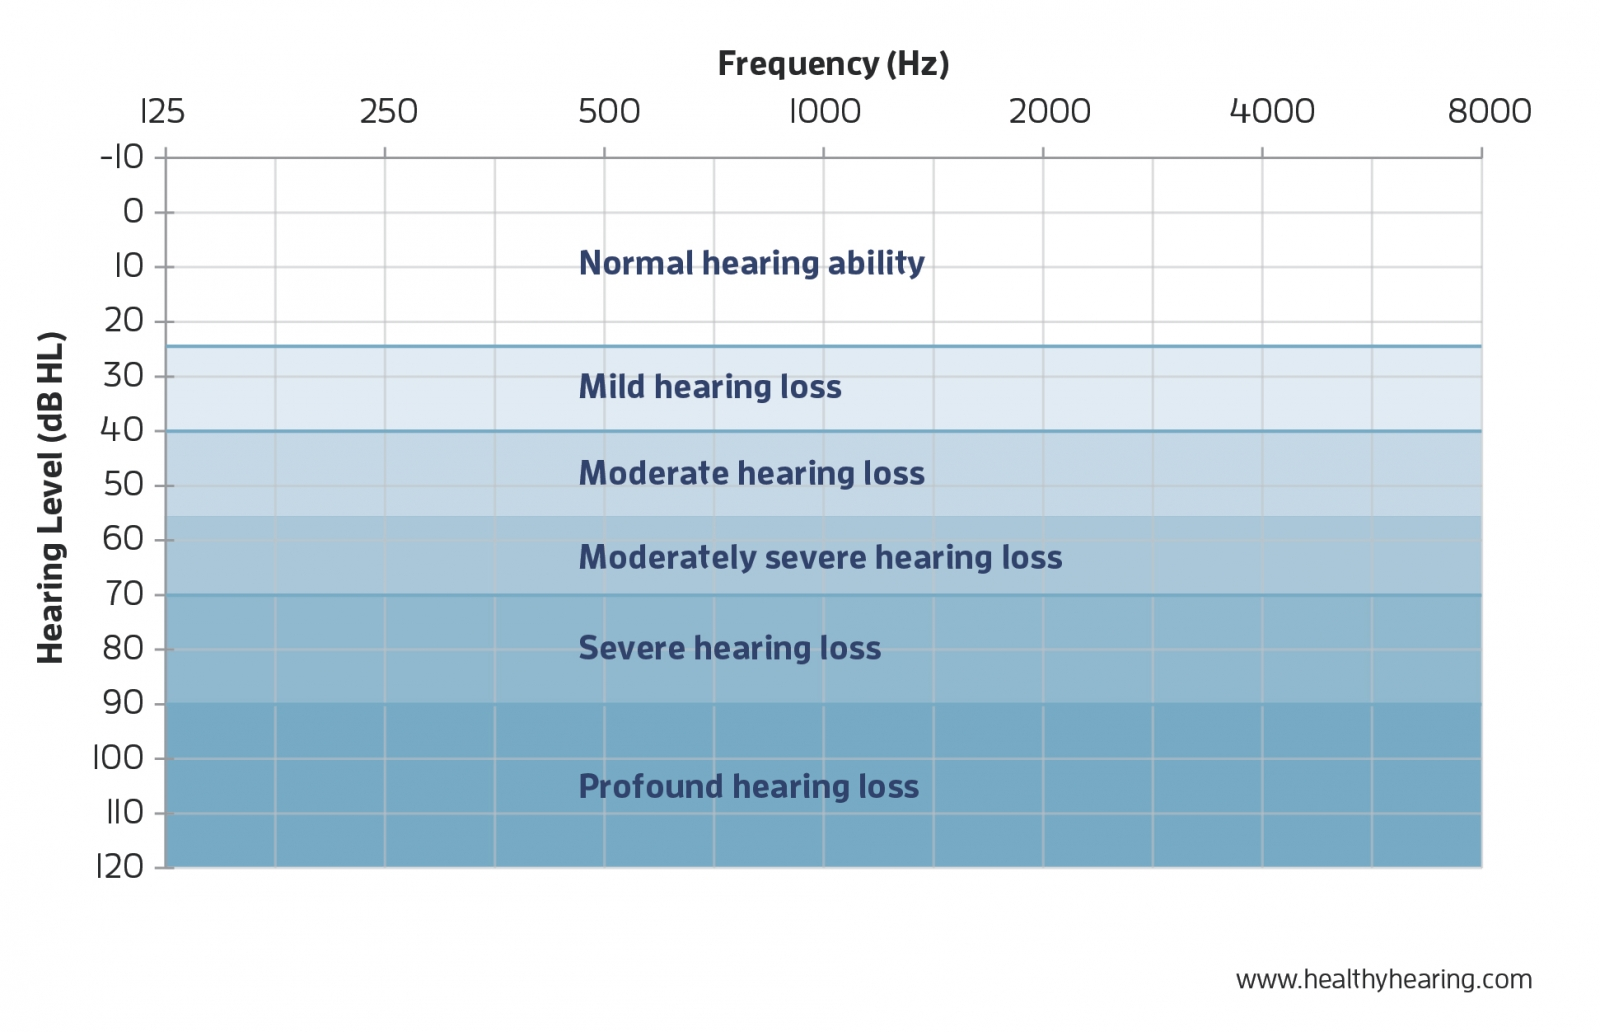 audiogram showing degrees of hearing loss